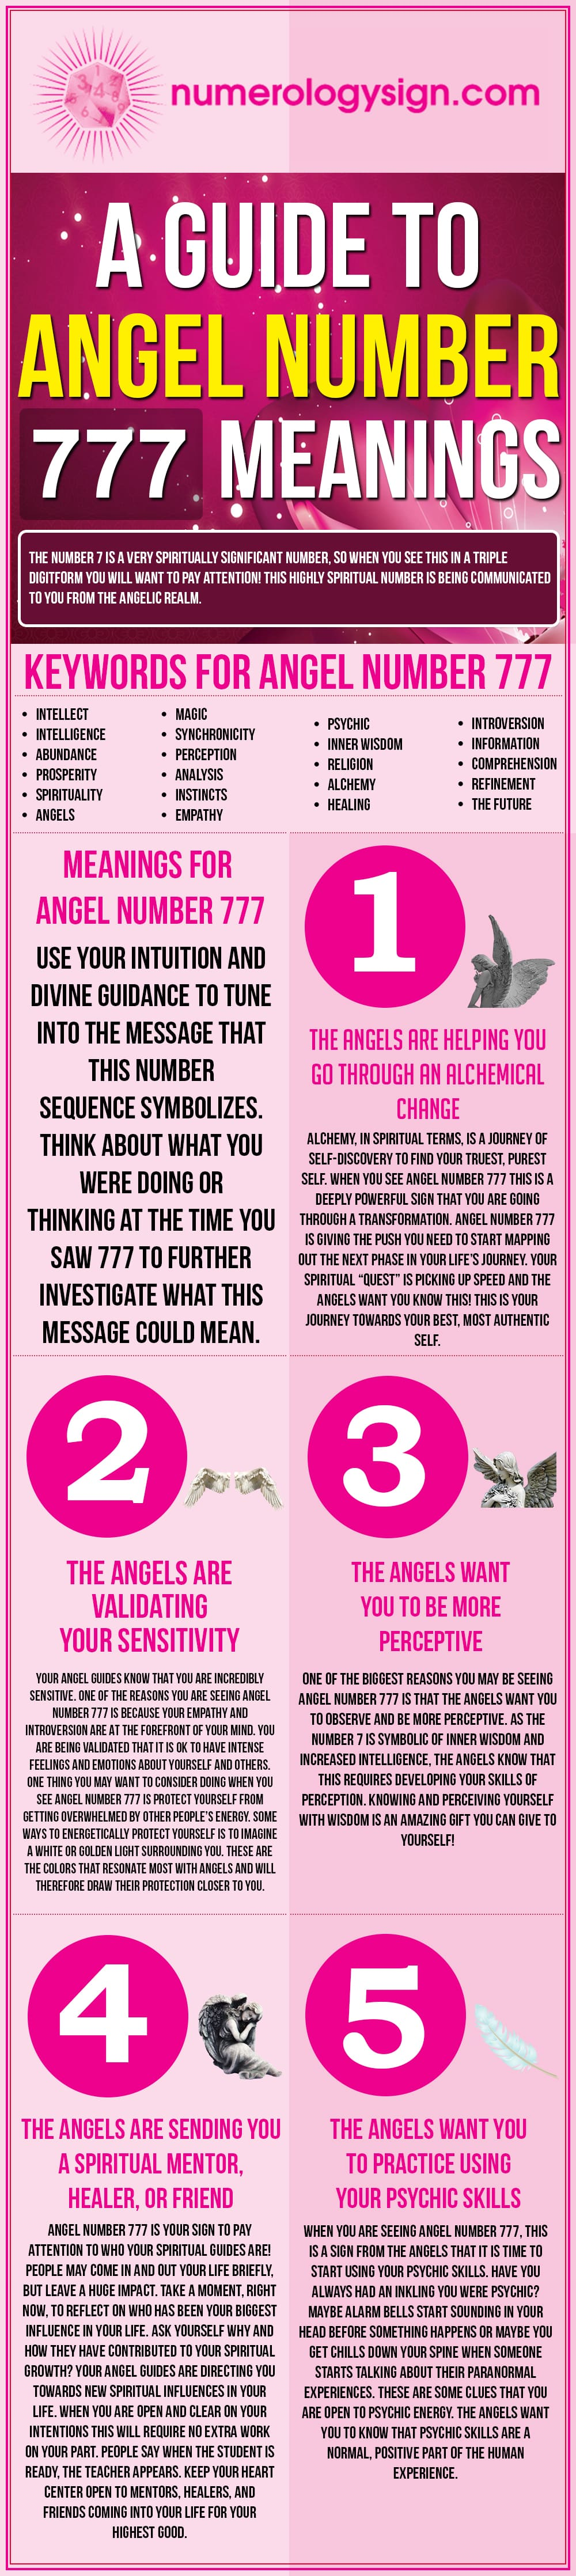 Angel Number 777 Meanings Infographic